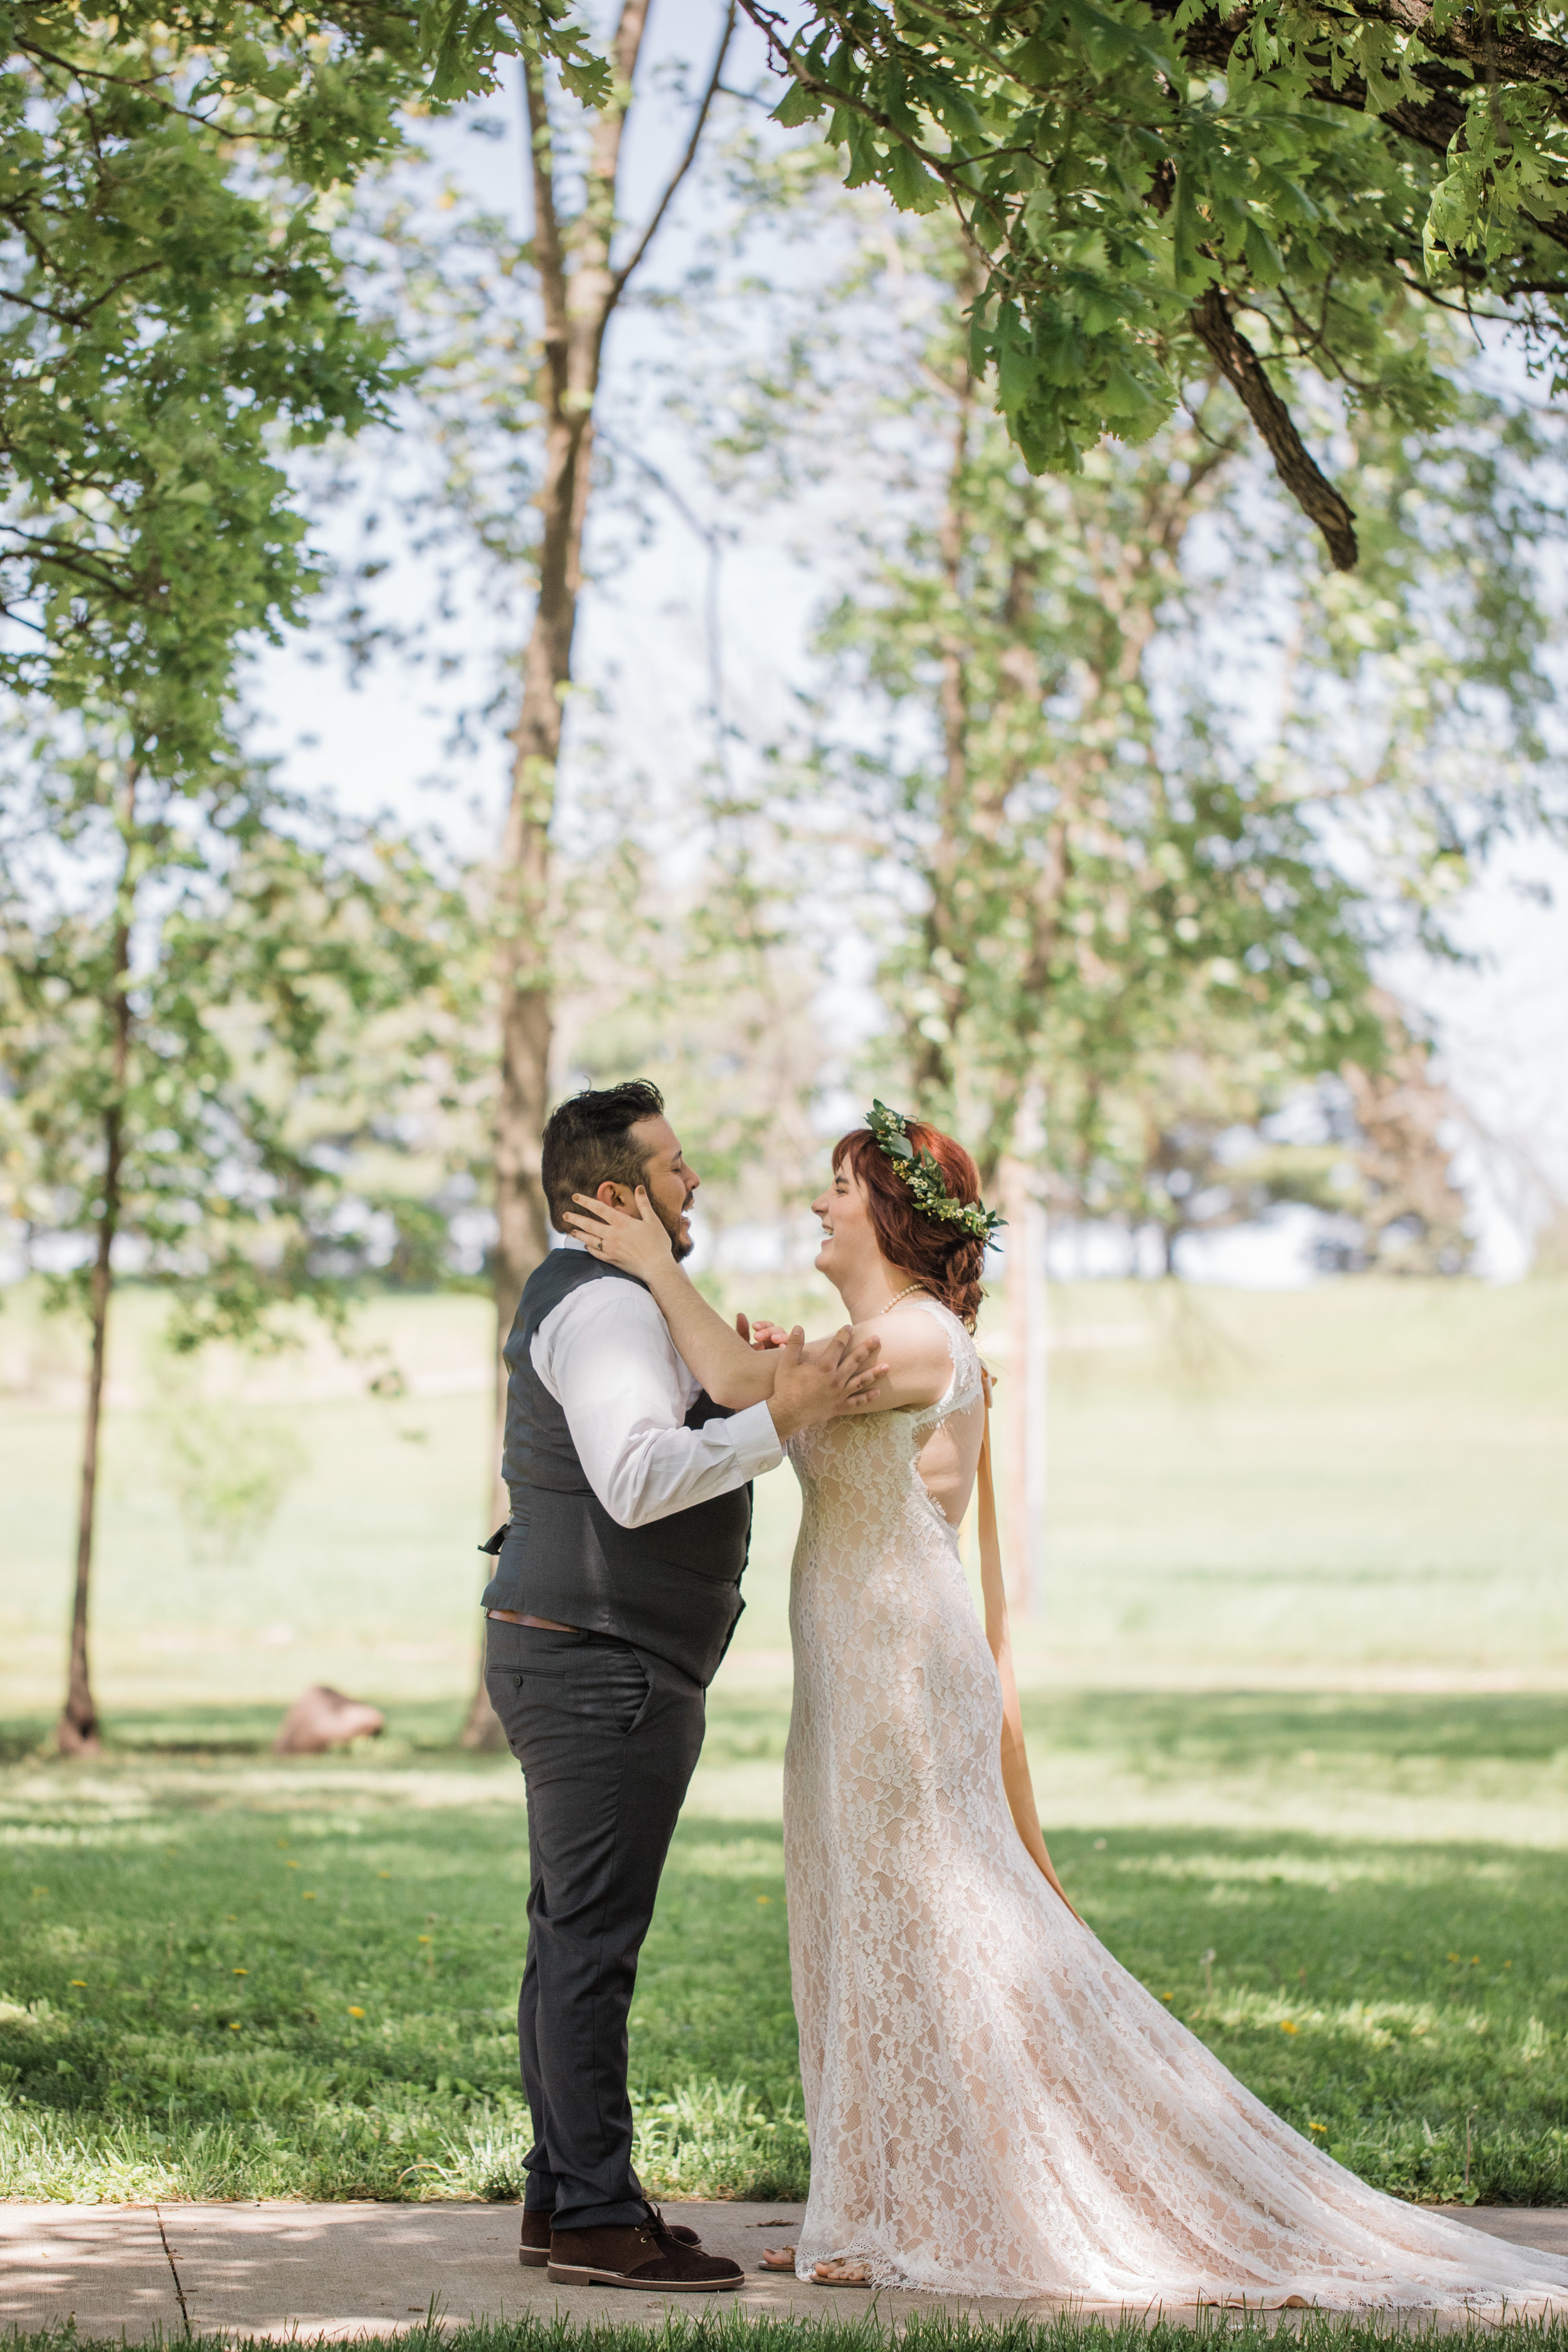 romantic and emotional first look moments outside Riverside bible camp in Story City wedding